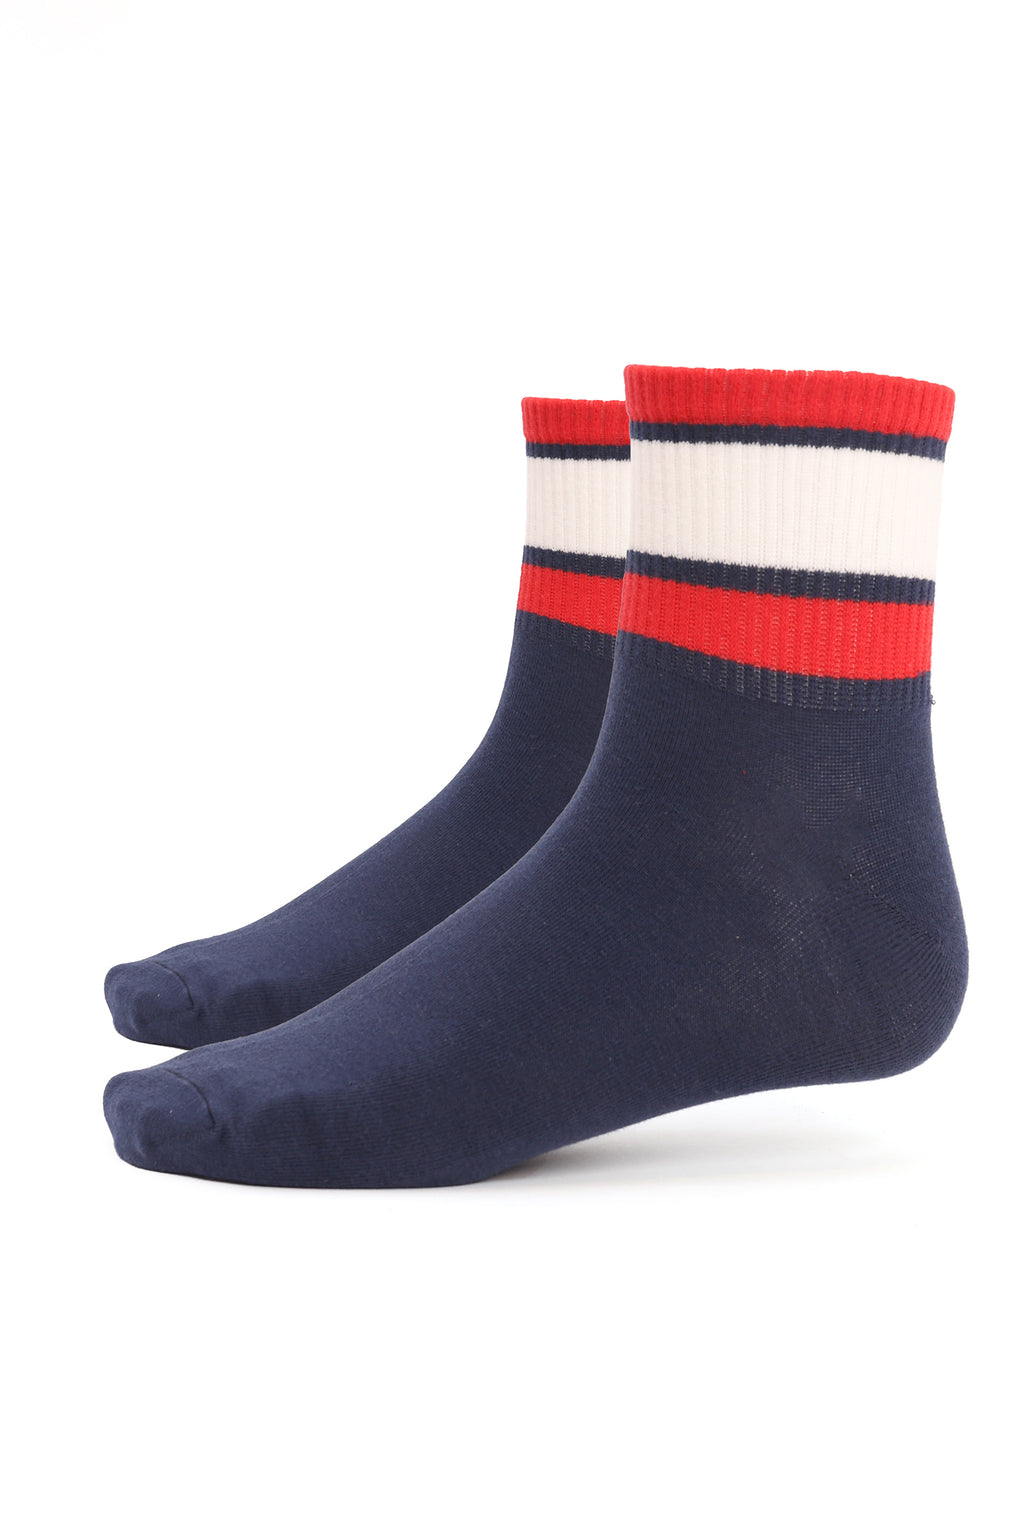 SPORTS SOCKS -NAVY-WHITE